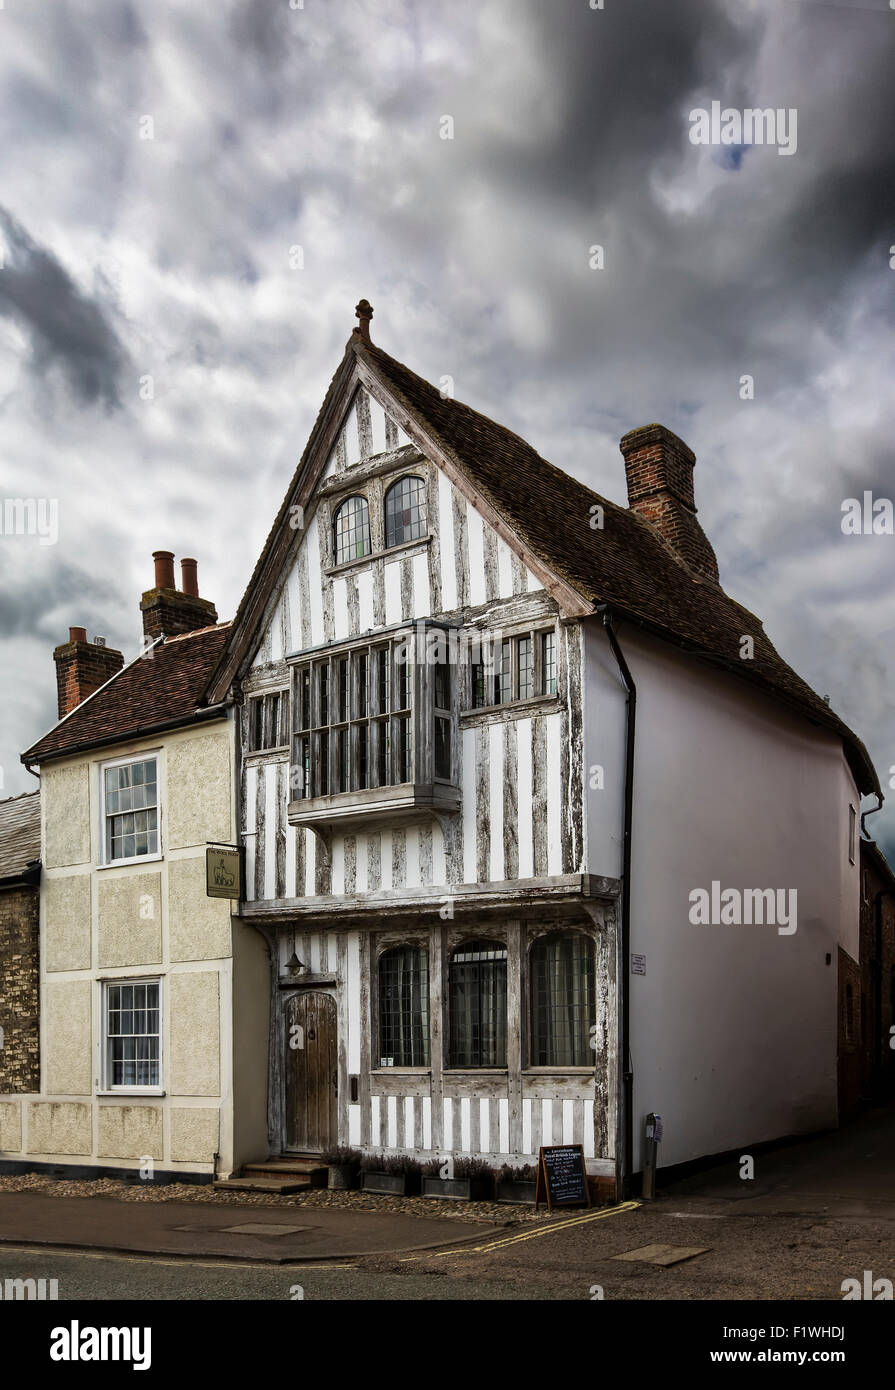 Lavenham, a village and civil parish in Suffolk, England  noted for its 15th-century church, half-timbered medieval - Stock Image